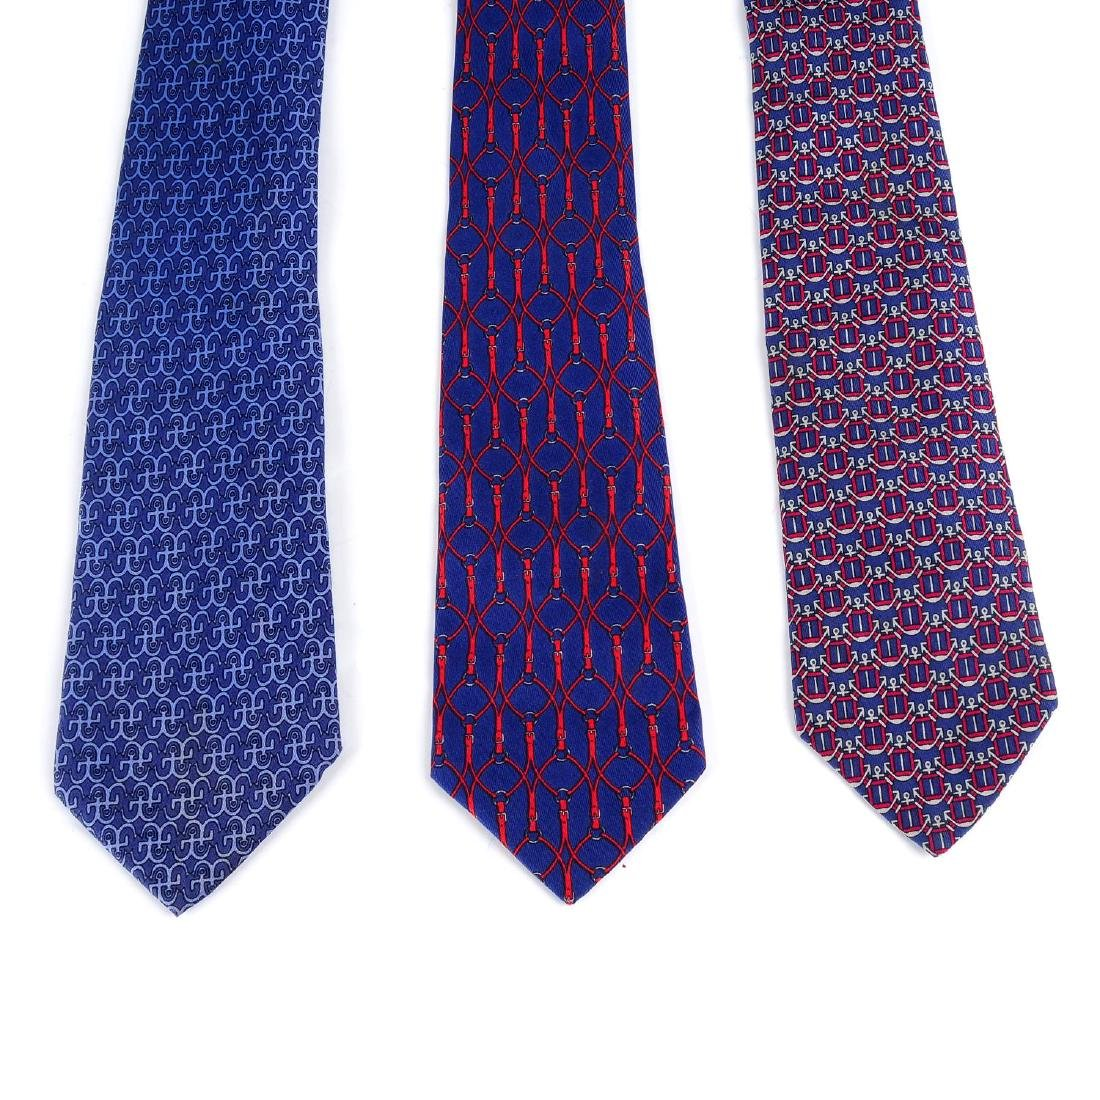 HERMÈS - three silk ties. All featuring blue and red